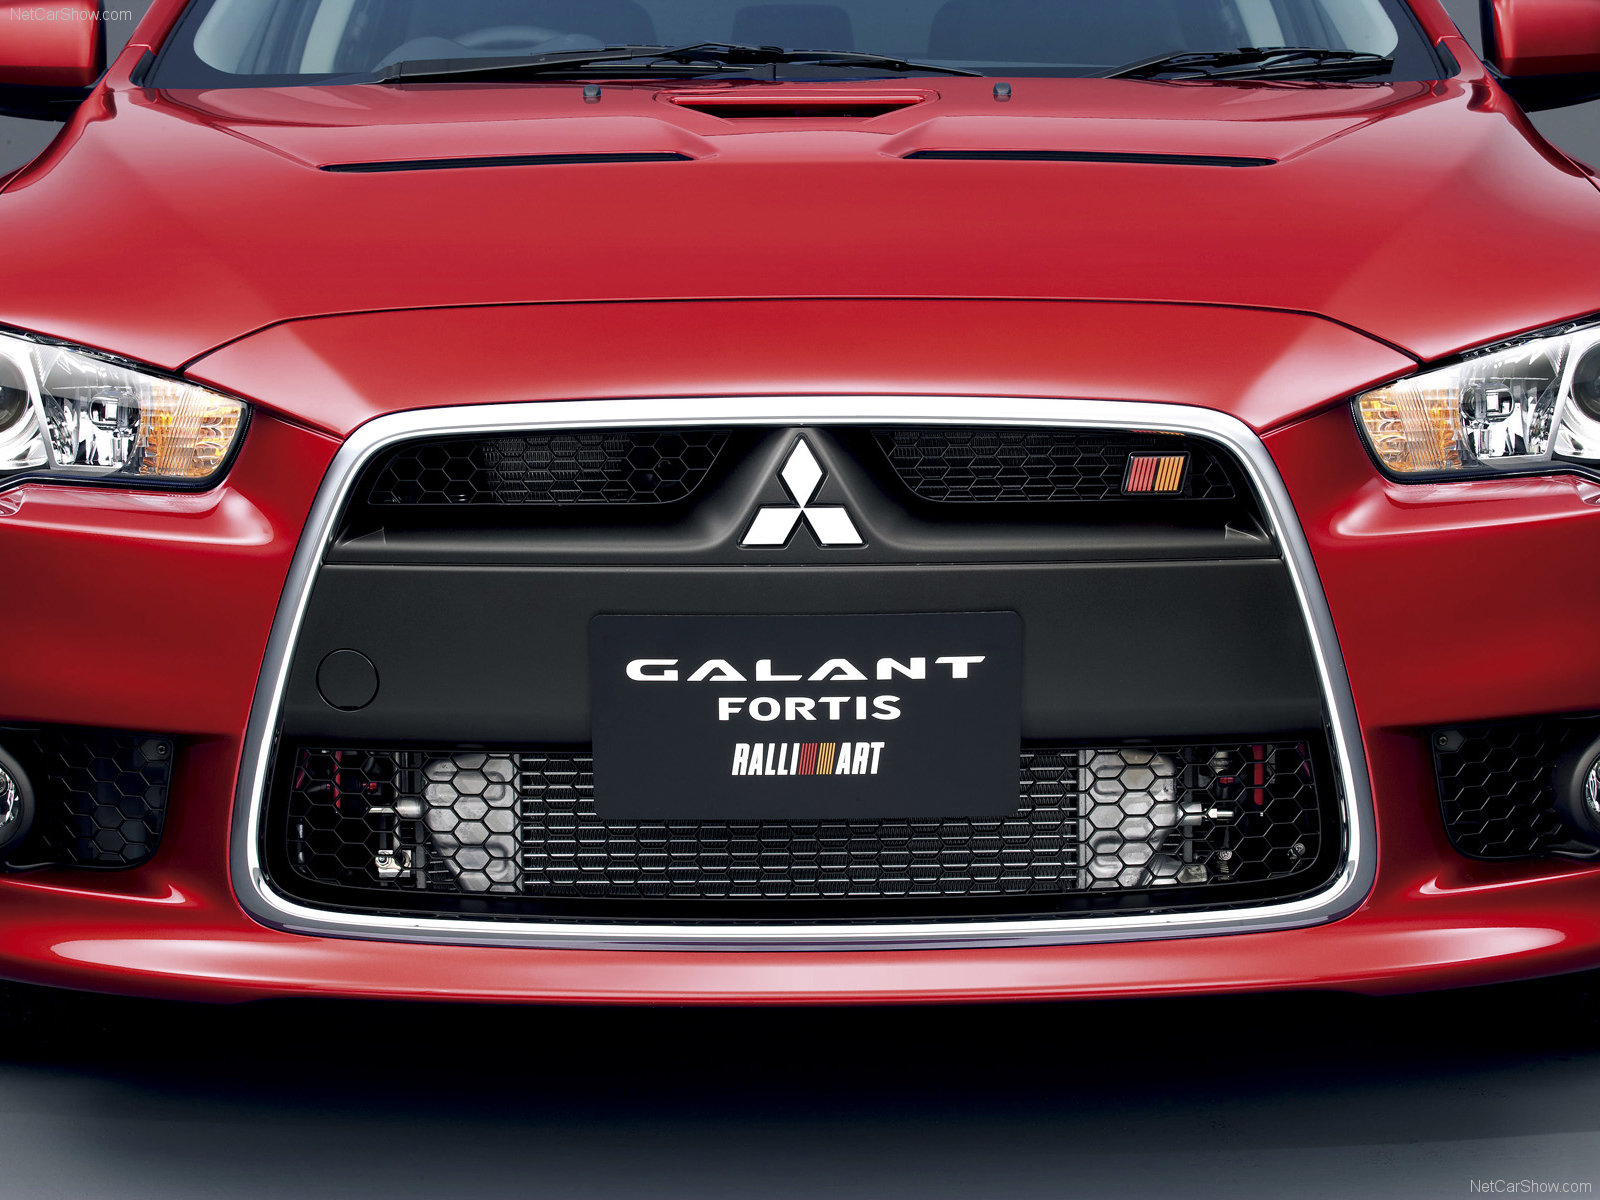 Mitsubishi Gallant Fortis Ralliart photo 56443